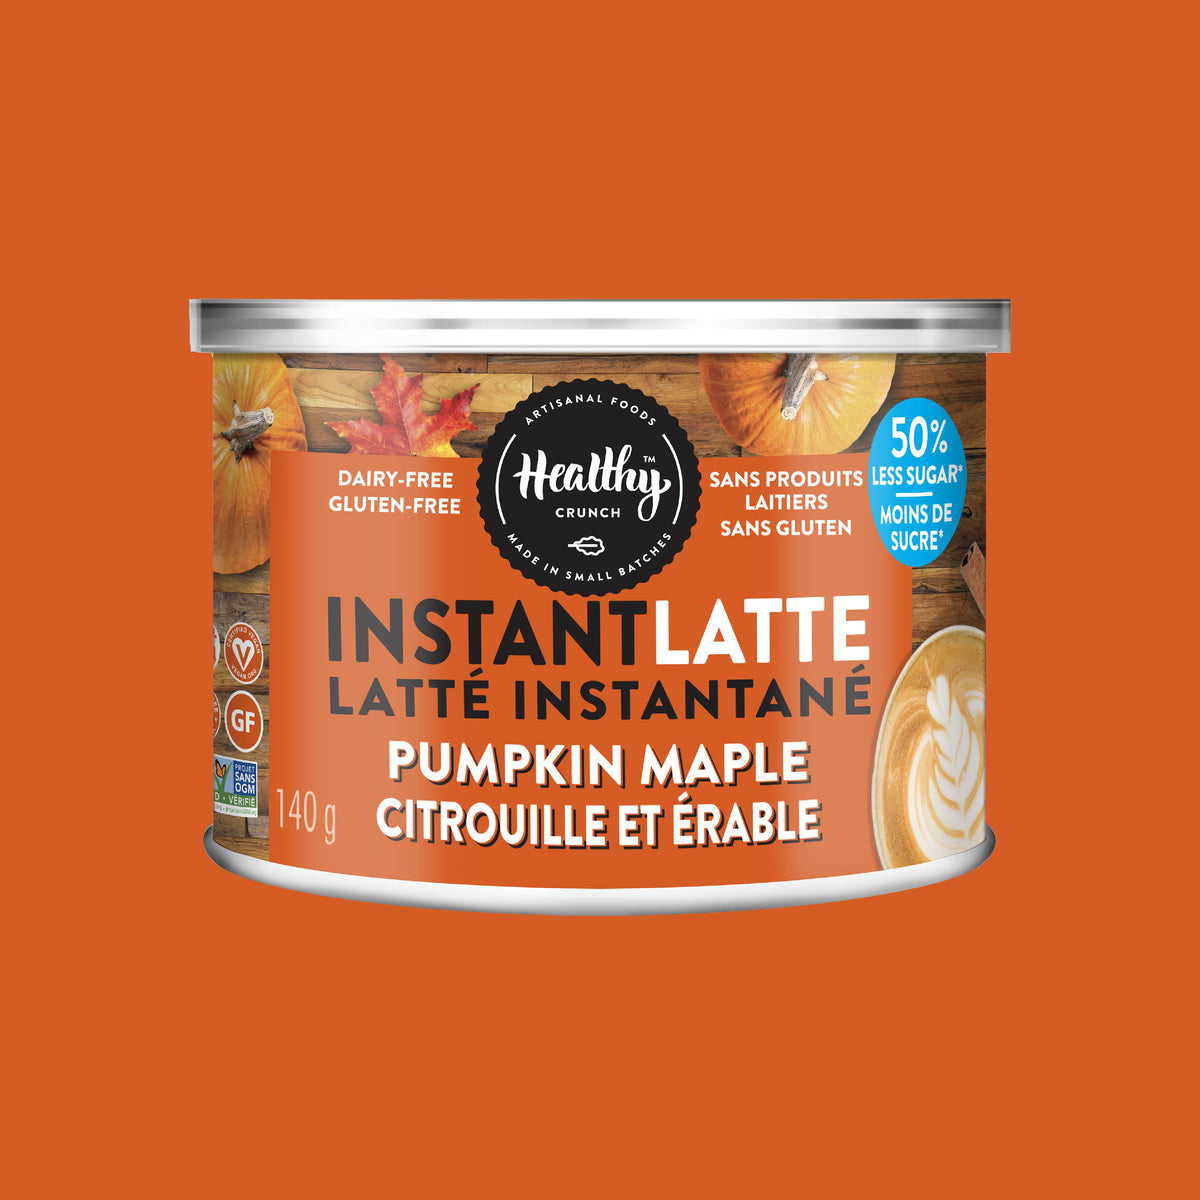 Pumpkin Maple Instant Latte